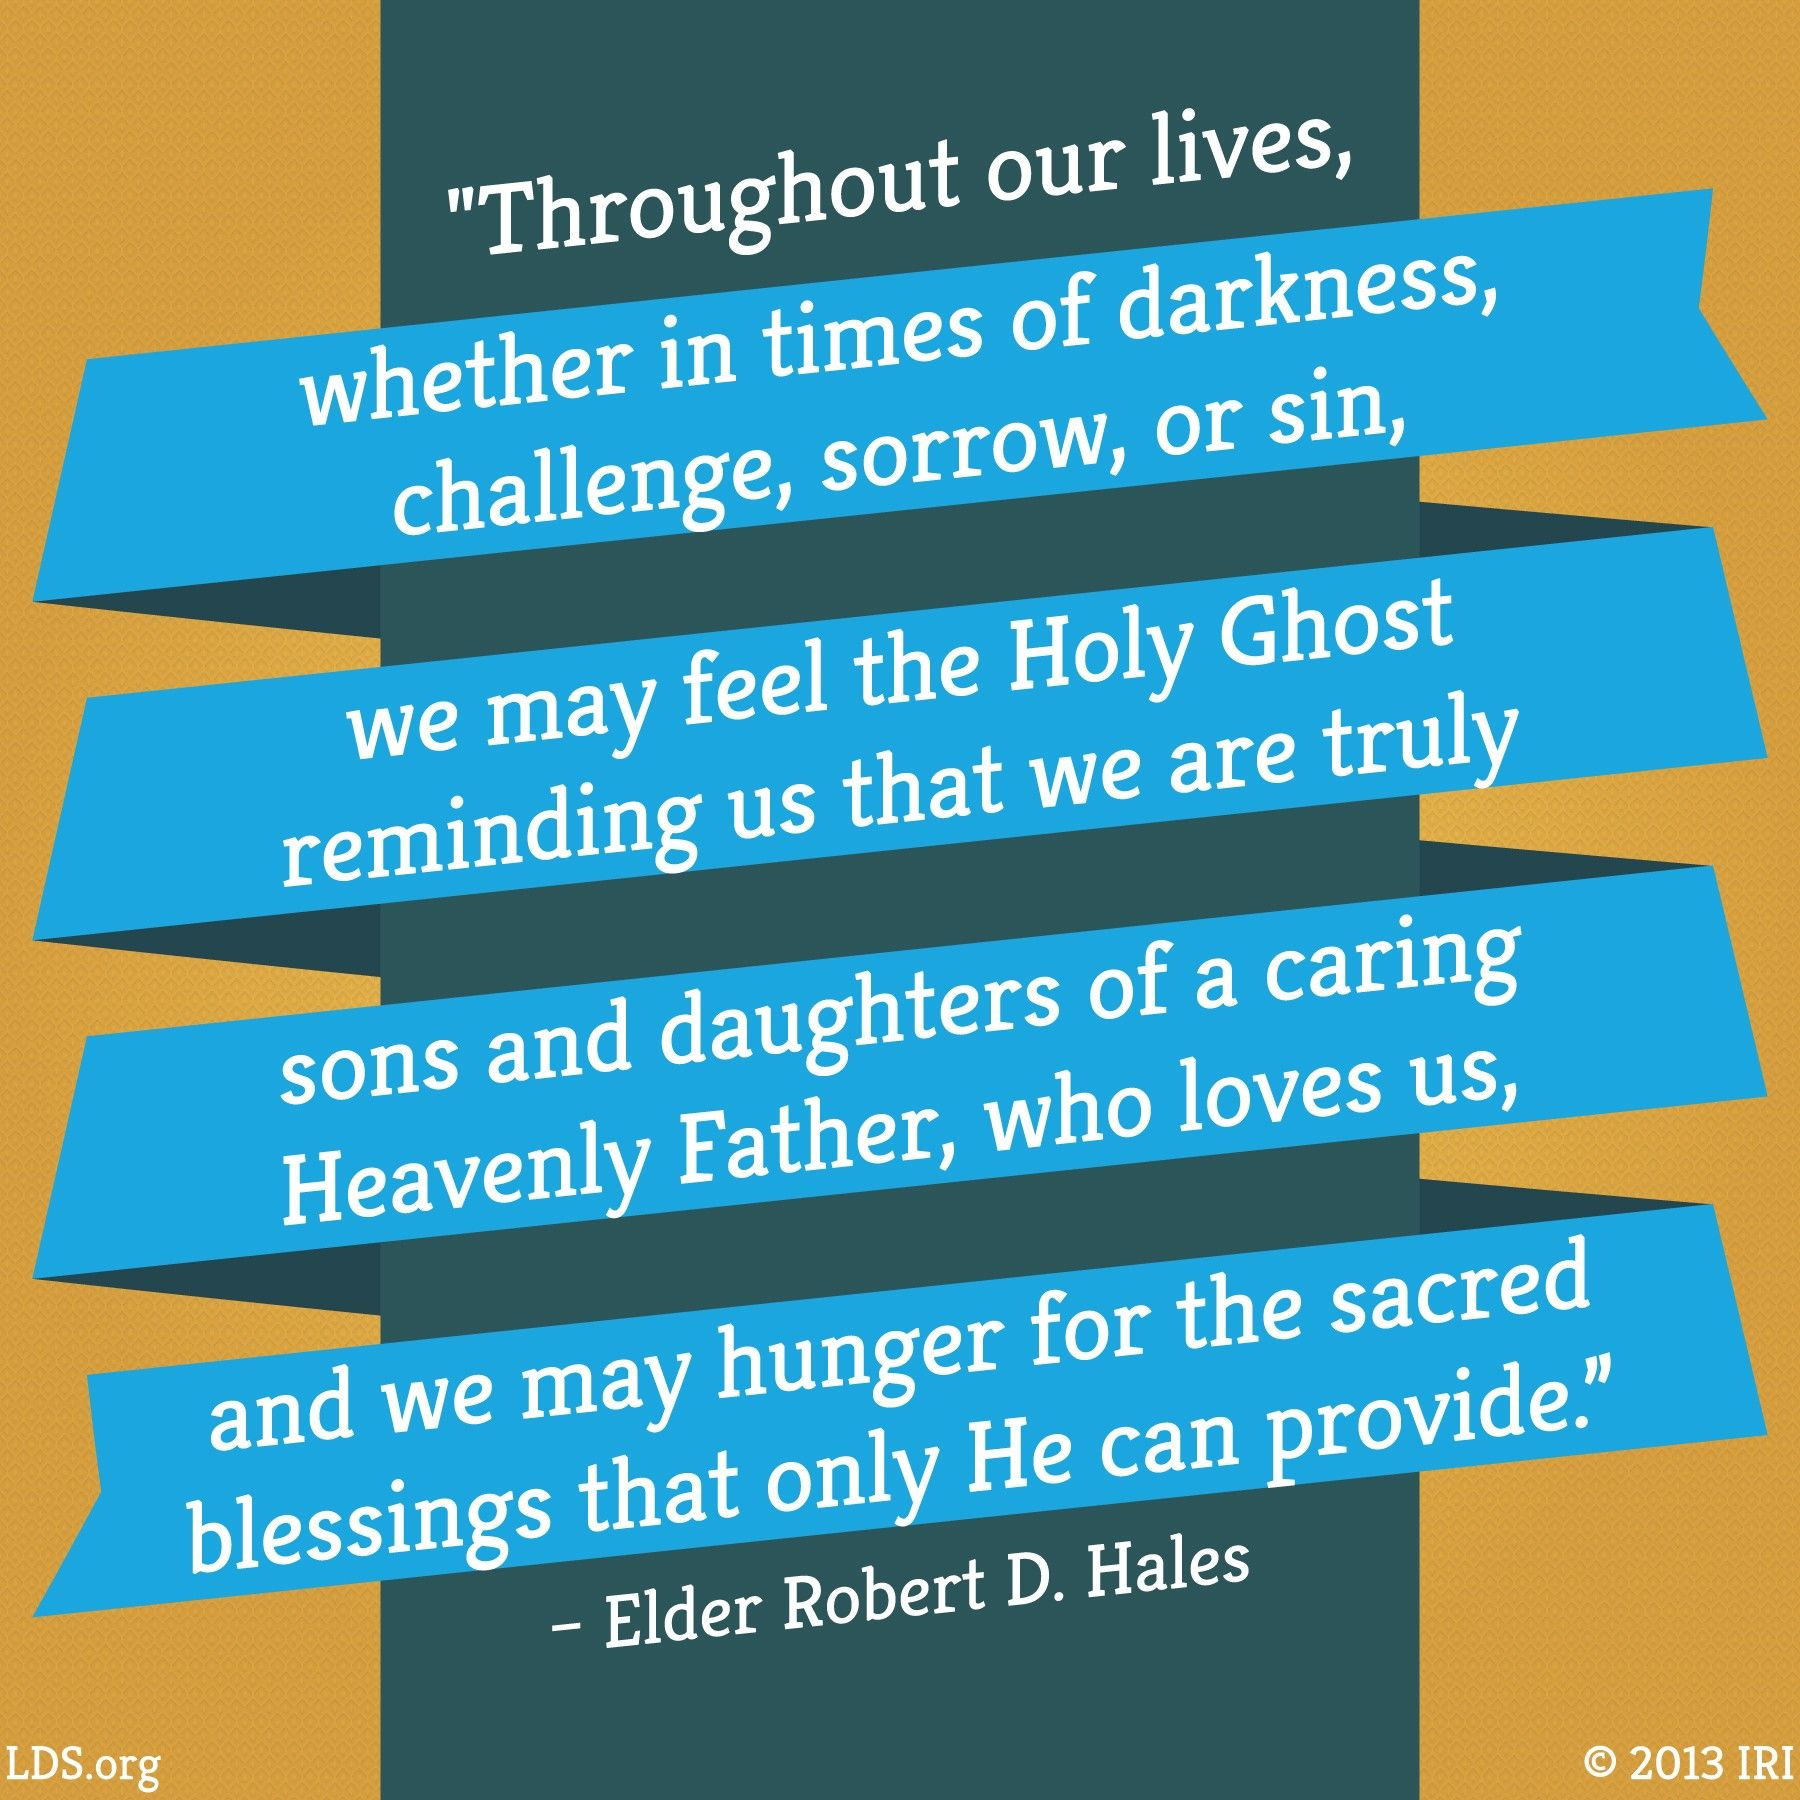 """""""Throughout our lives, whether in times of darkness, challenge, sorrow, or sin, we may feel the Holy Ghost reminding us that we are truly sons and daughters of a caring Heavenly Father, who loves us, and we may hunger for the sacred blessings that only He can provide.""""—Elder Robert D. Hales, """"Coming to Ourselves: The Sacrament, the Temple, and Sacrifice in Service"""""""